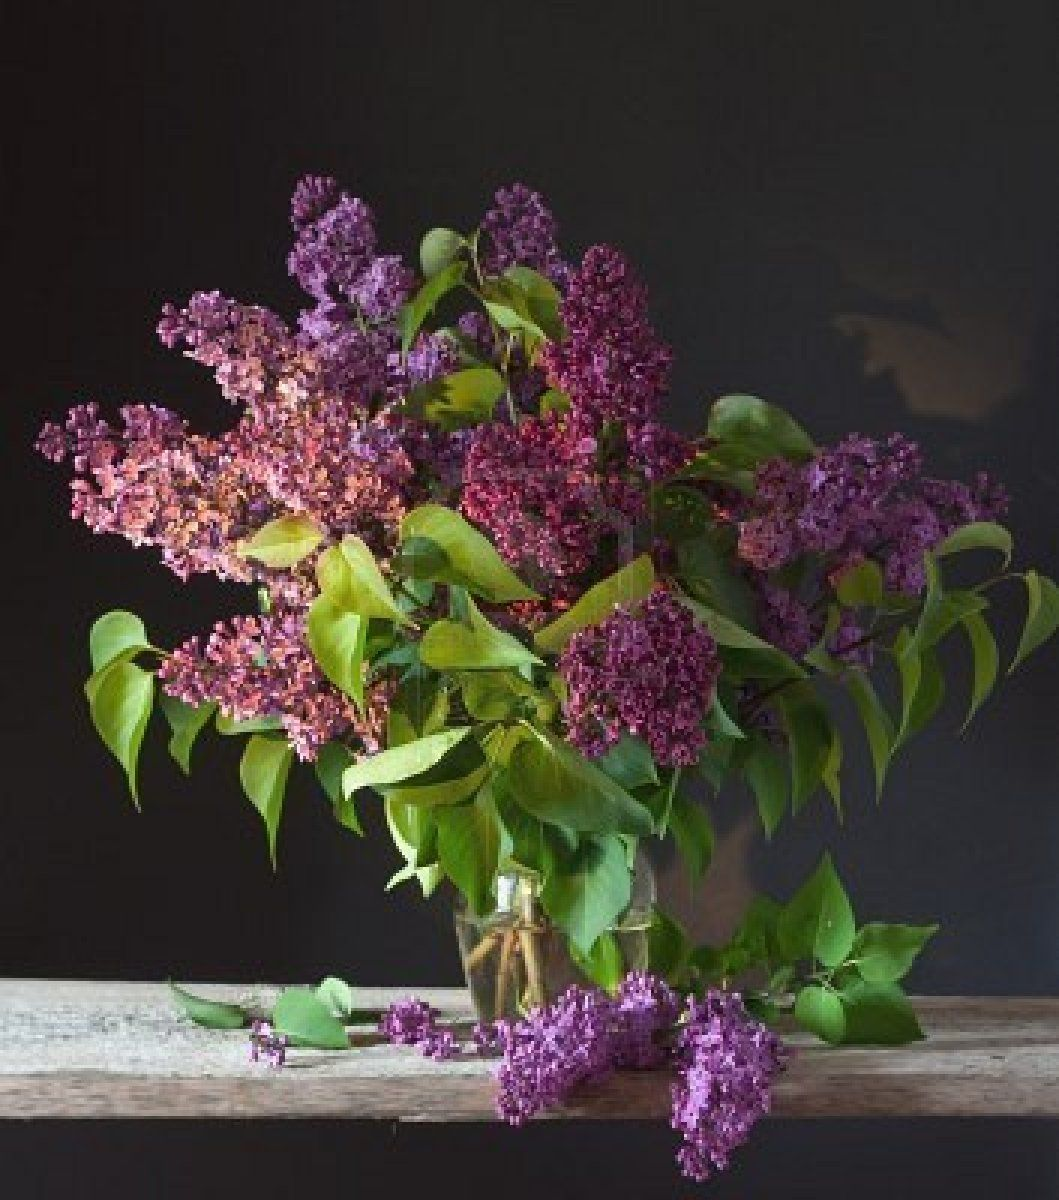 Bouquet Of Spring Purple Lilac In A Vase Still Life Royalty Free Lavender Lilacs Photo Bouquet Purple Lilac Most Beautiful Flowers